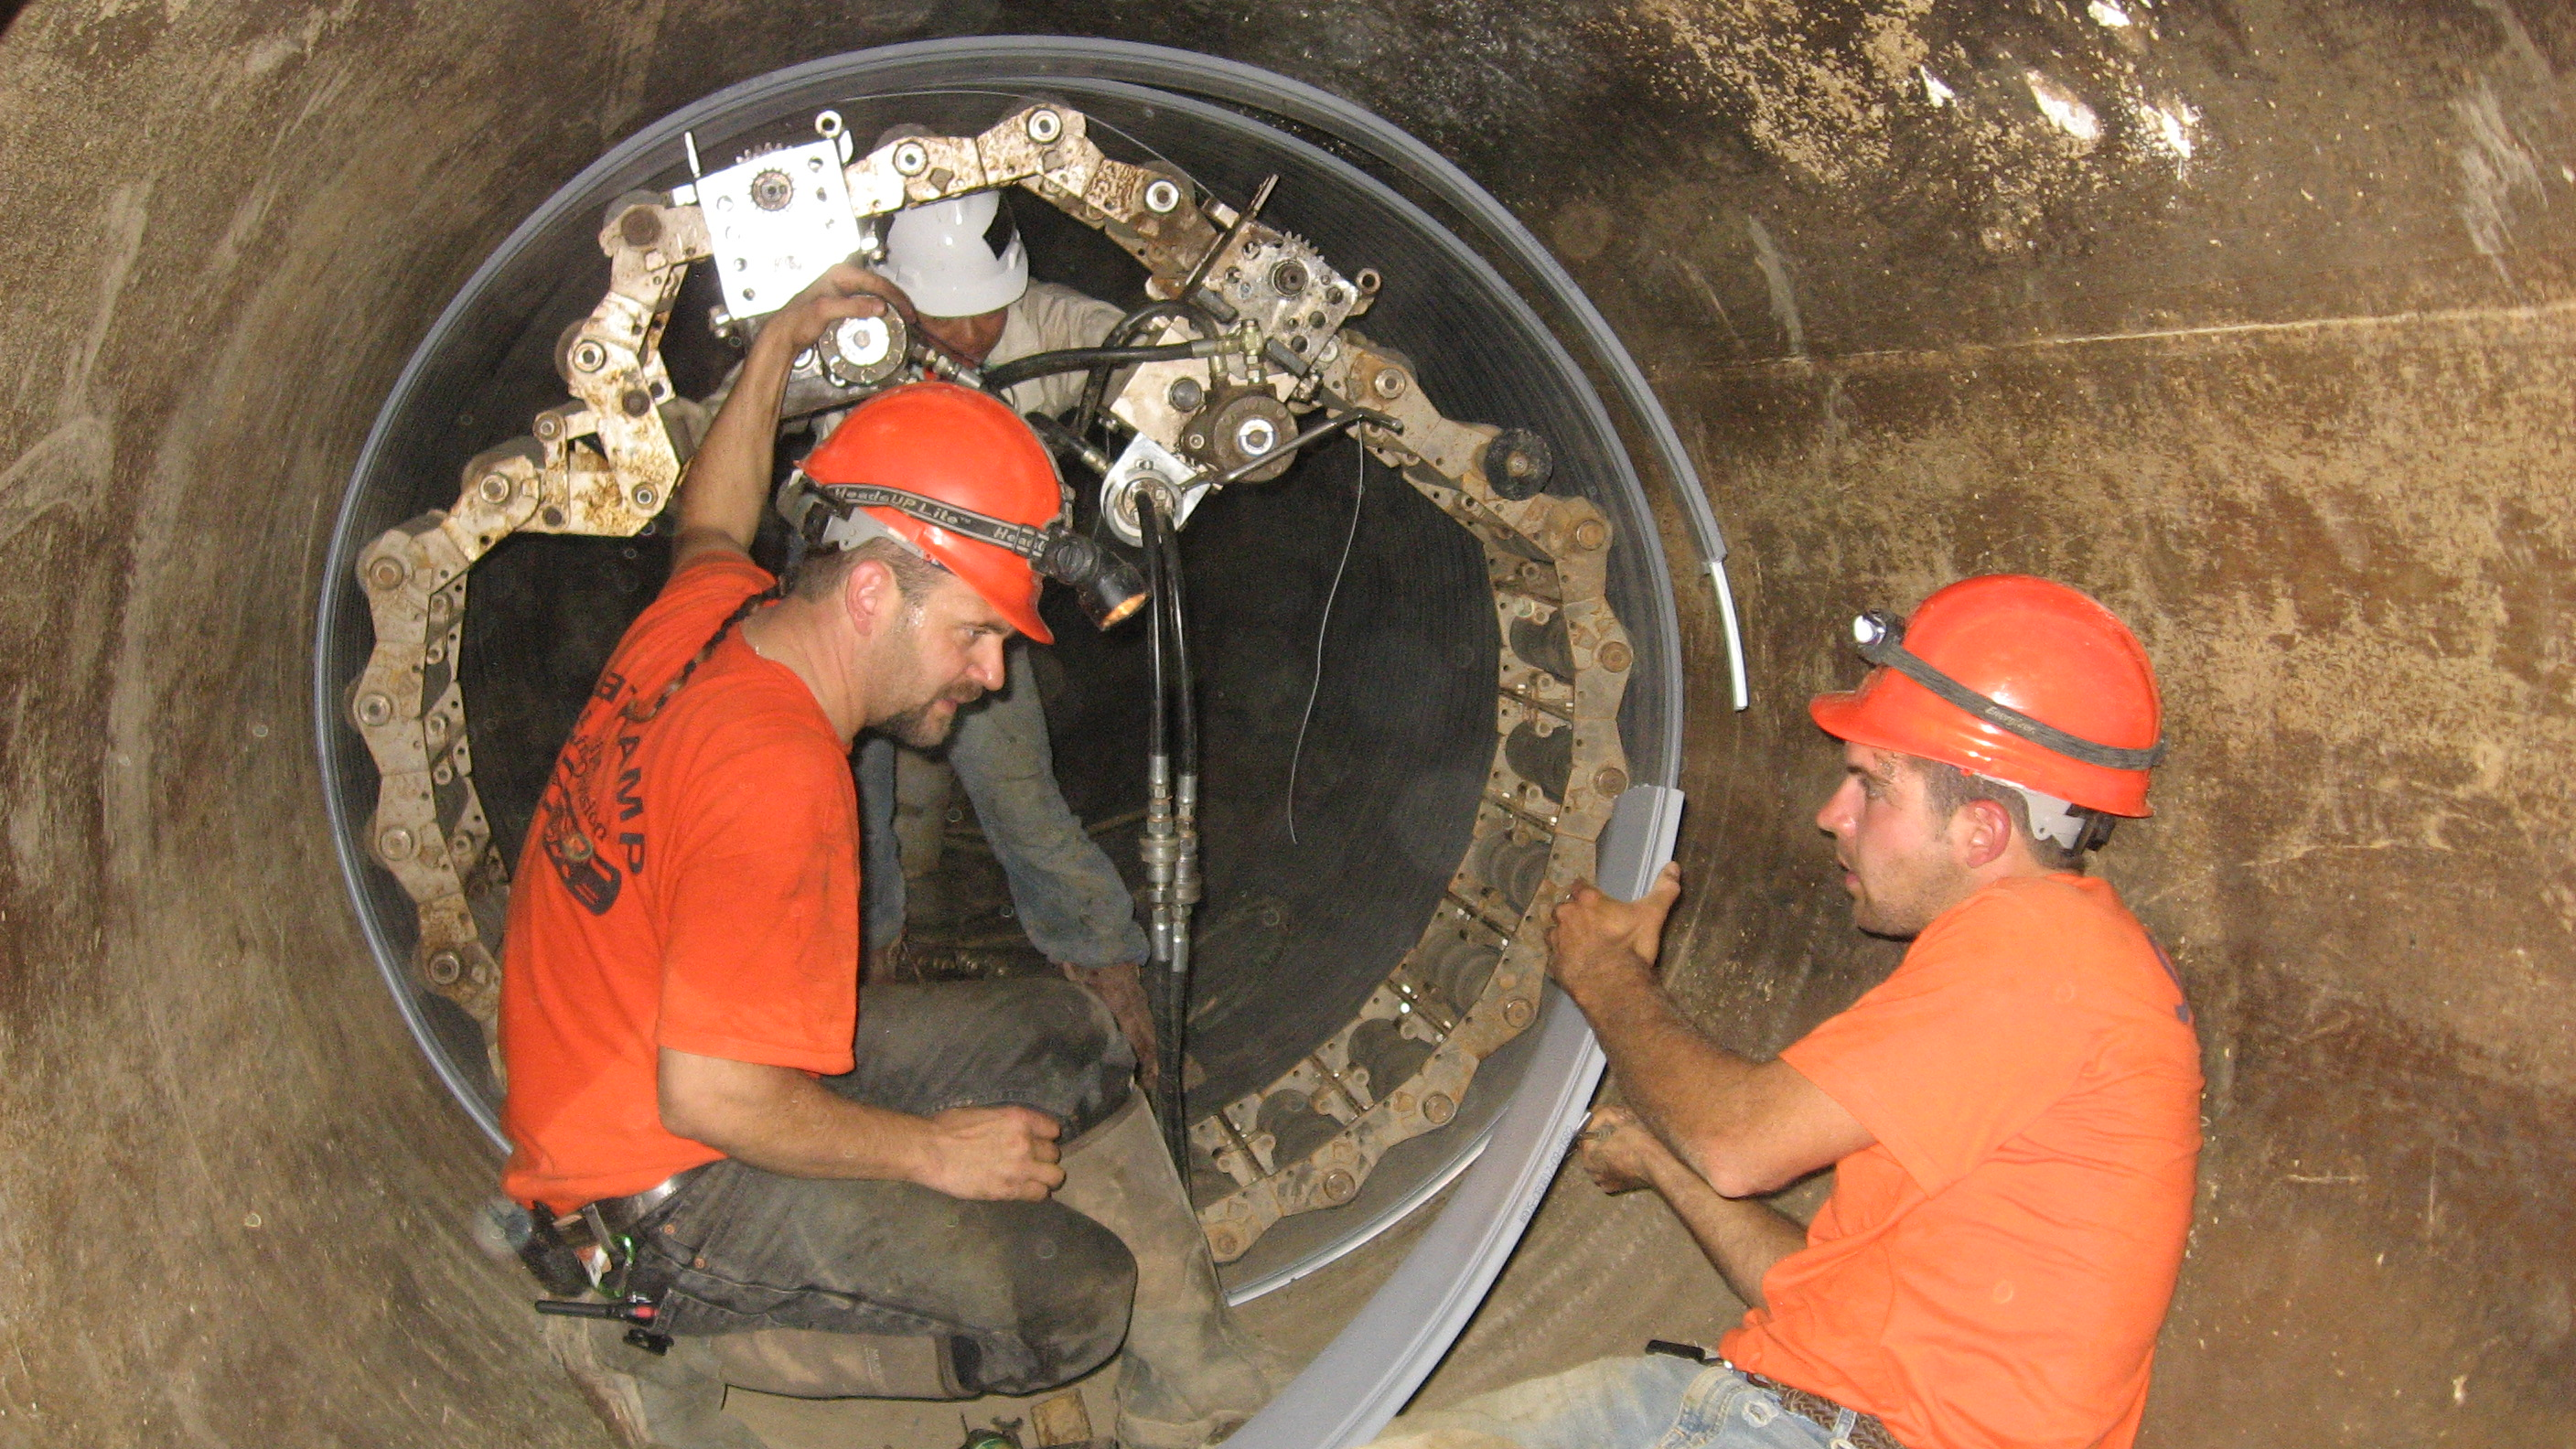 Northwest Branch Sewer Inspection And Repair Washington